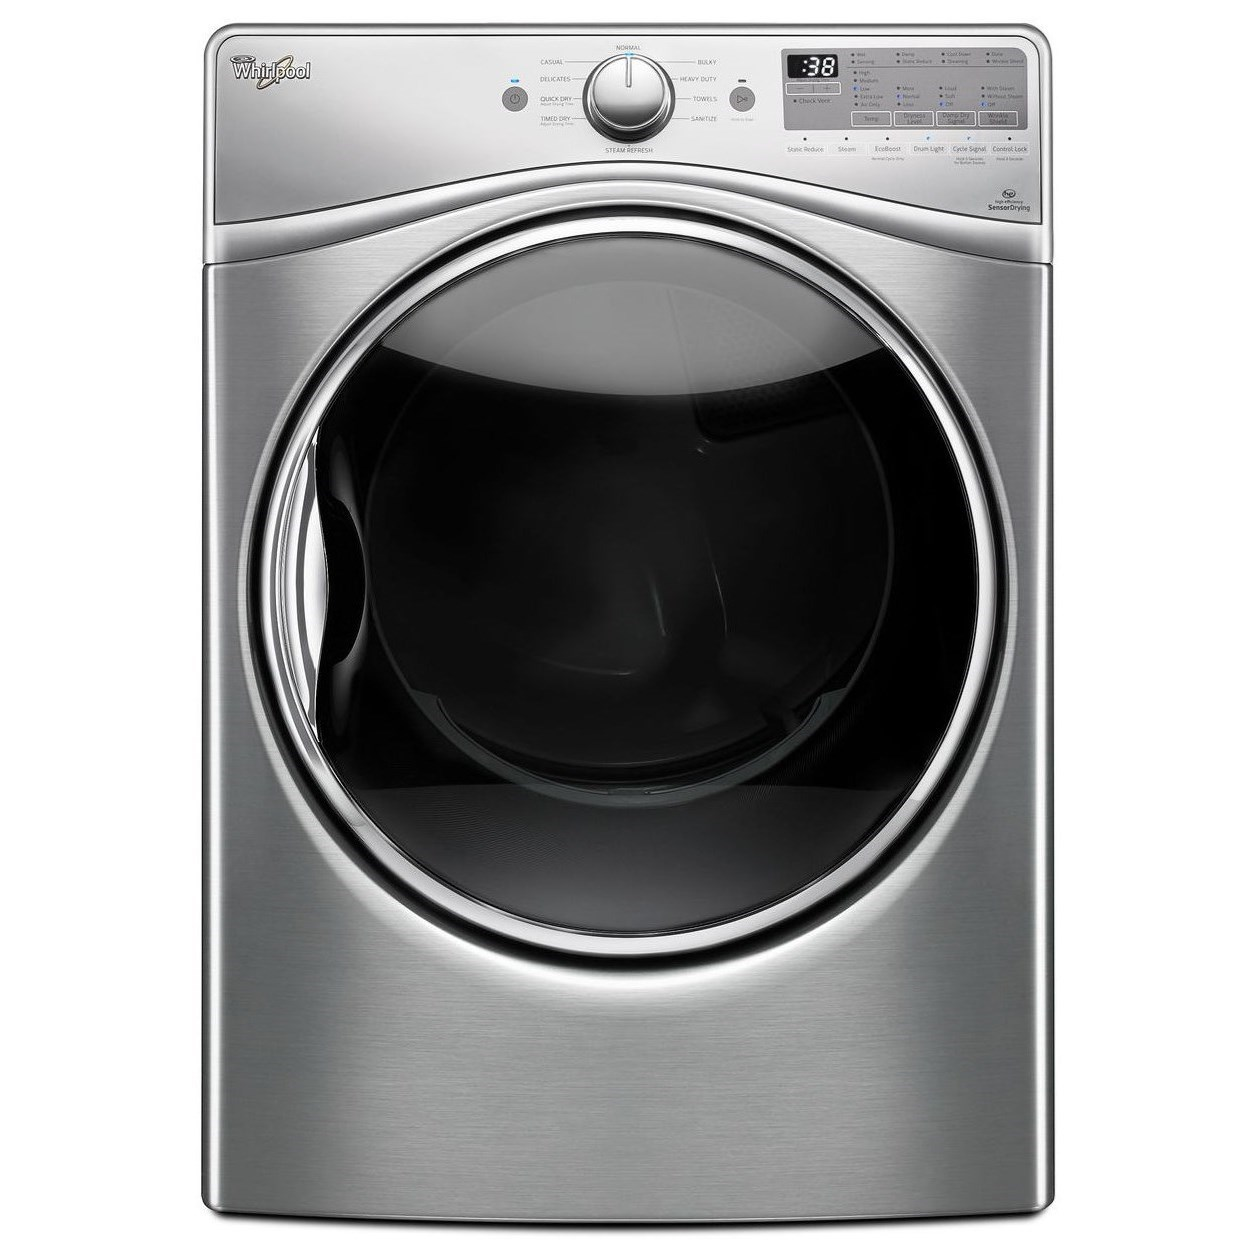 Whirlpool Electric Front Load Dryers 7.4 cu. ft. Electric Dryer - Item Number: WED92HEFU